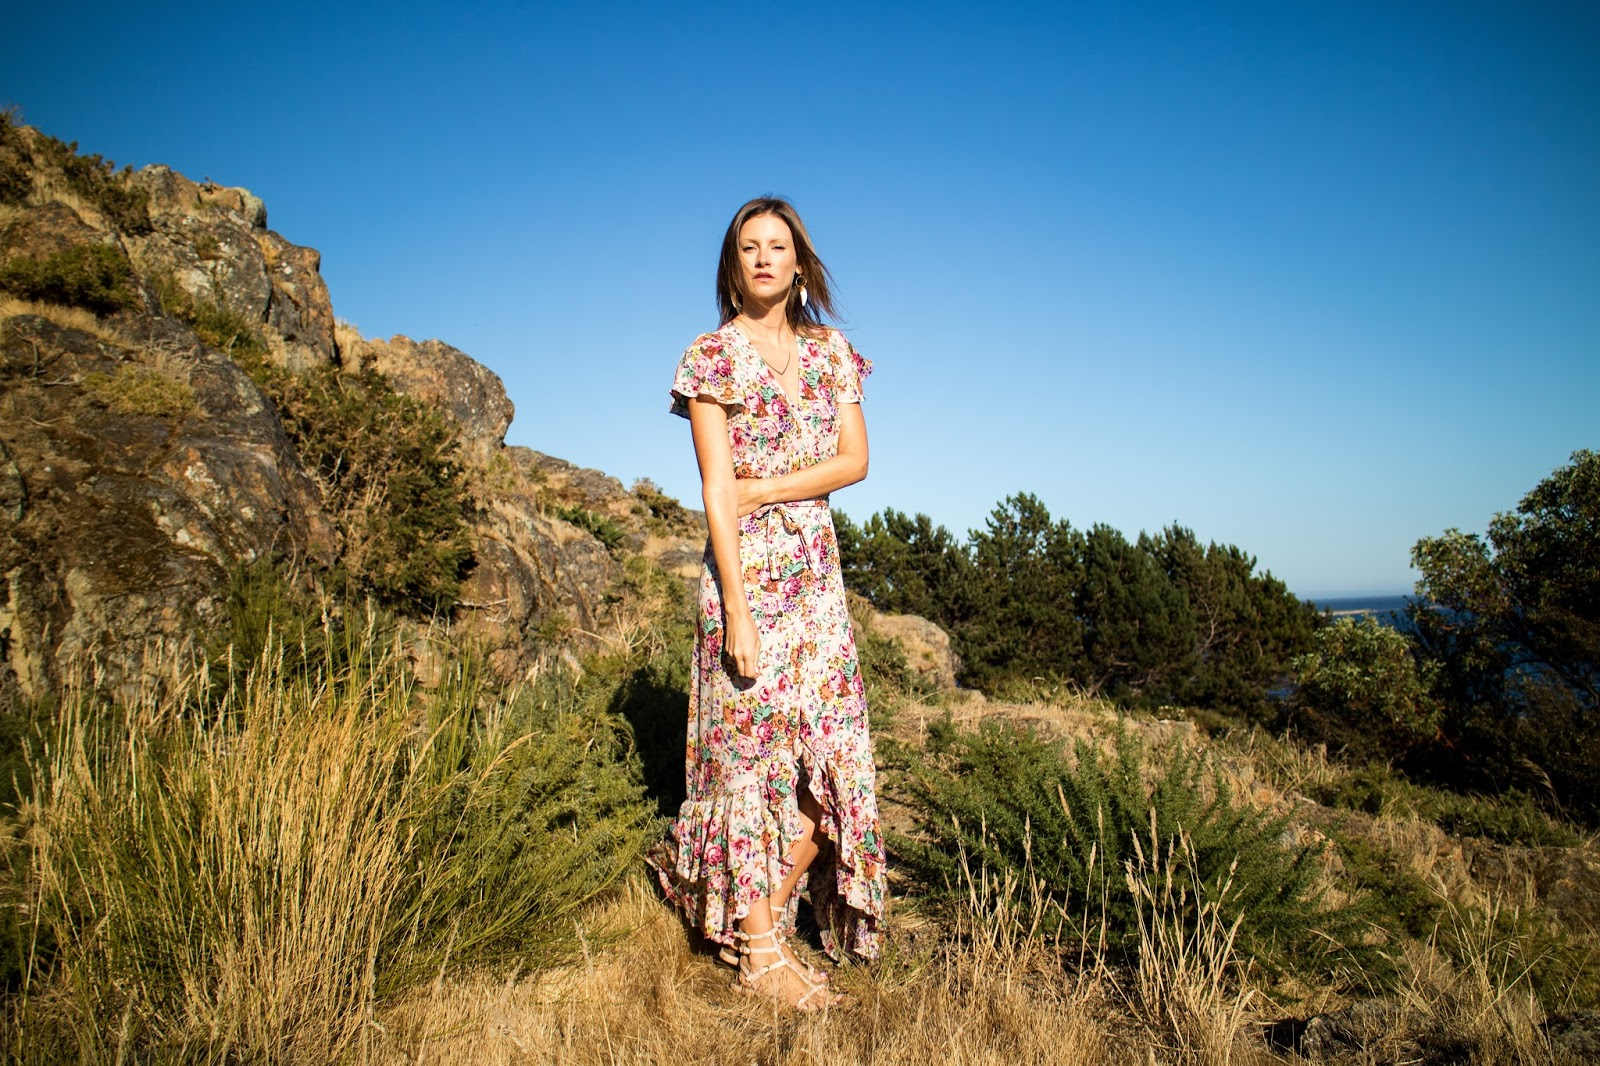 fashion blogger, Alison Hutchinson, is wearing an Auguste the label floral maxi dress and Sarah Mulder Jewelry